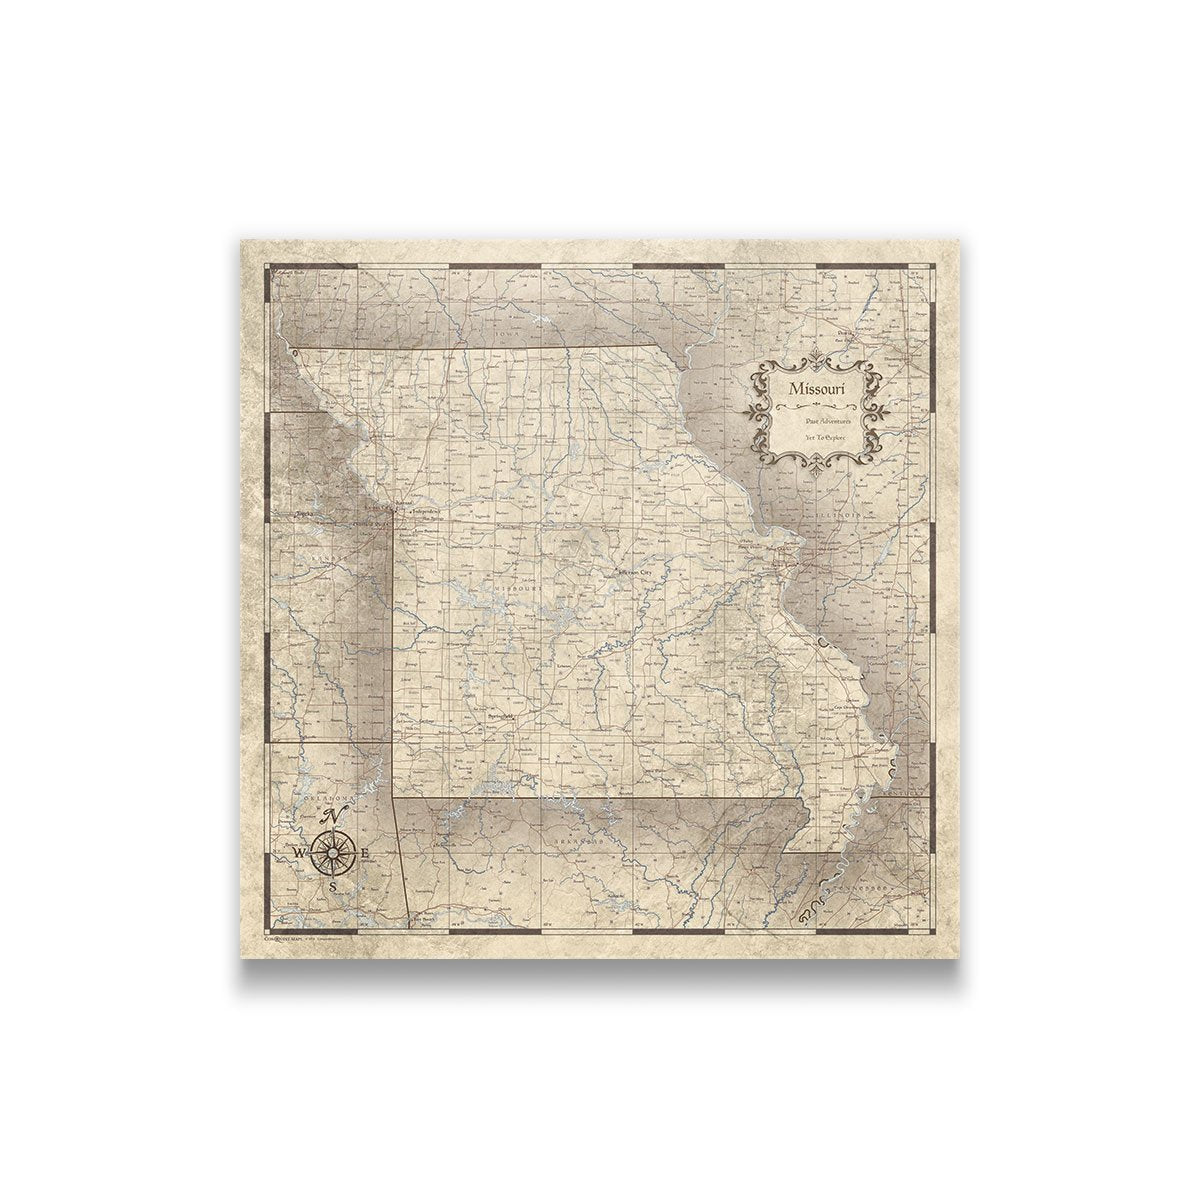 Missouri Travel Map Pin Board with Push Pins: Rustic Vintage